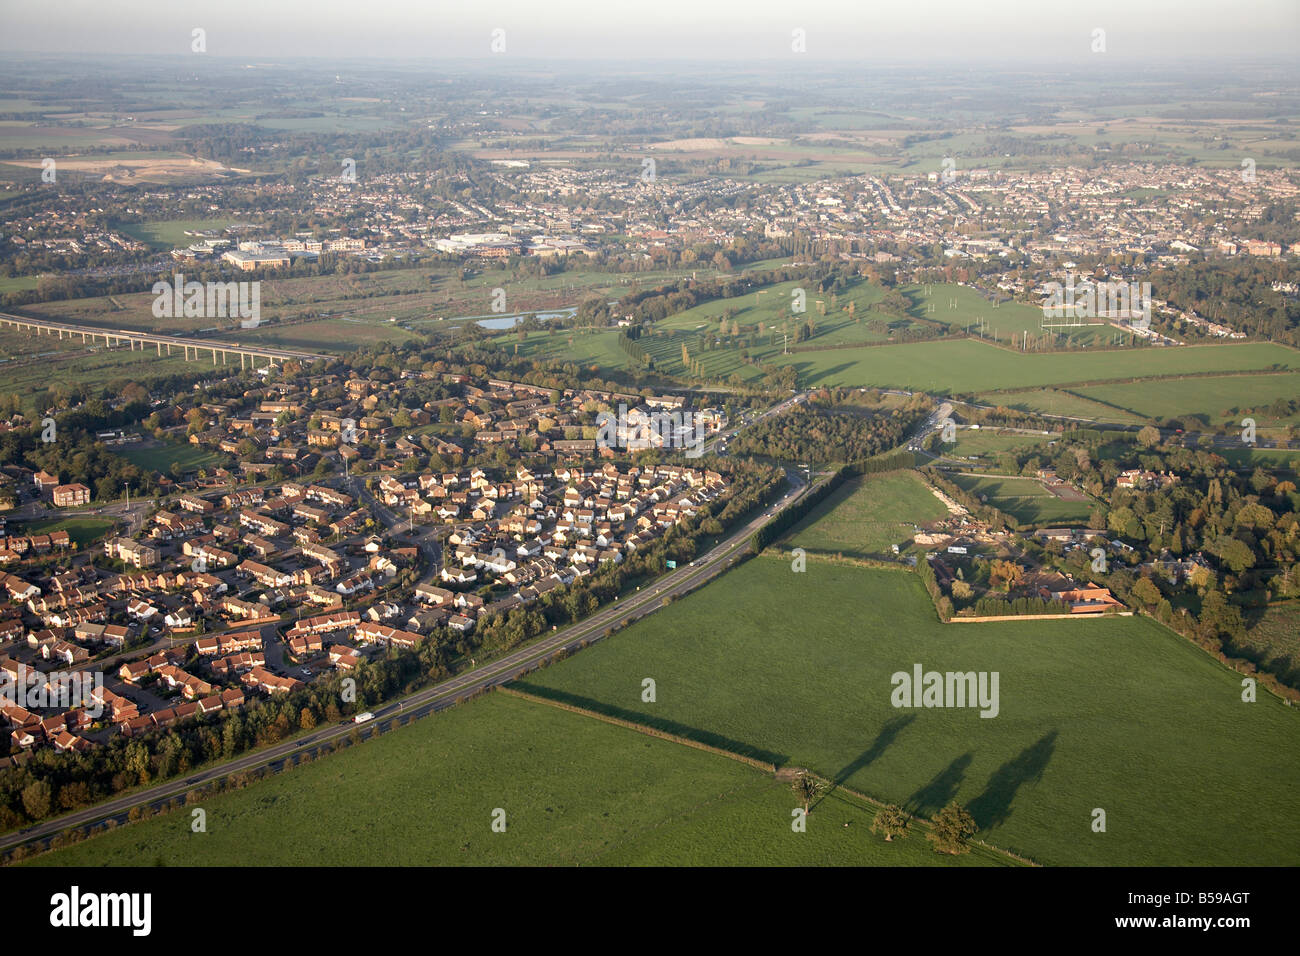 Aerial view north east the A414 road A10 road suburban houses country fields Rush Green Farm Hertford Heath Hertfordshire - Stock Image